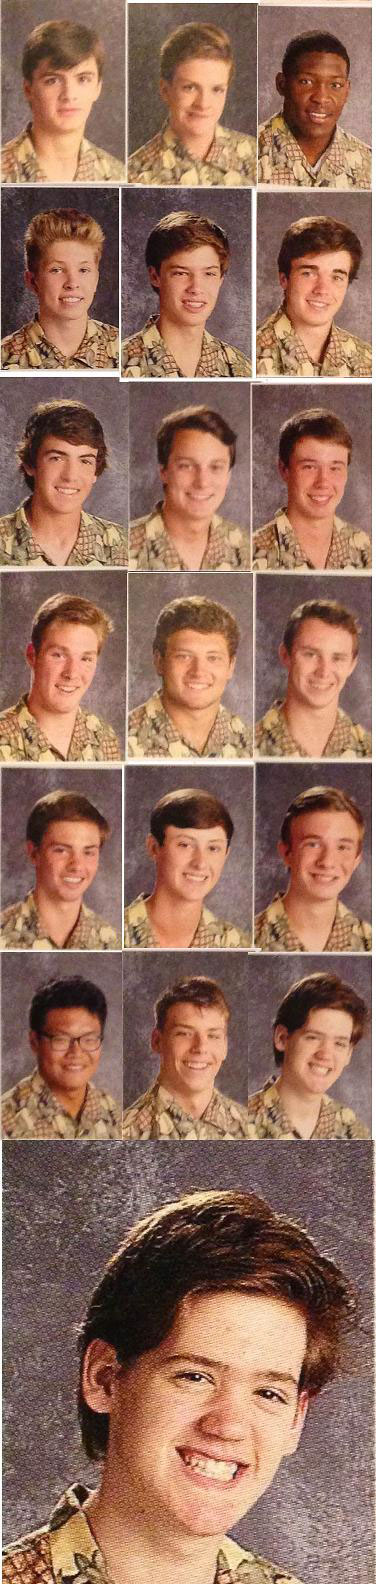 arkansas high school students pass around pineapple shirt for picture day (5)